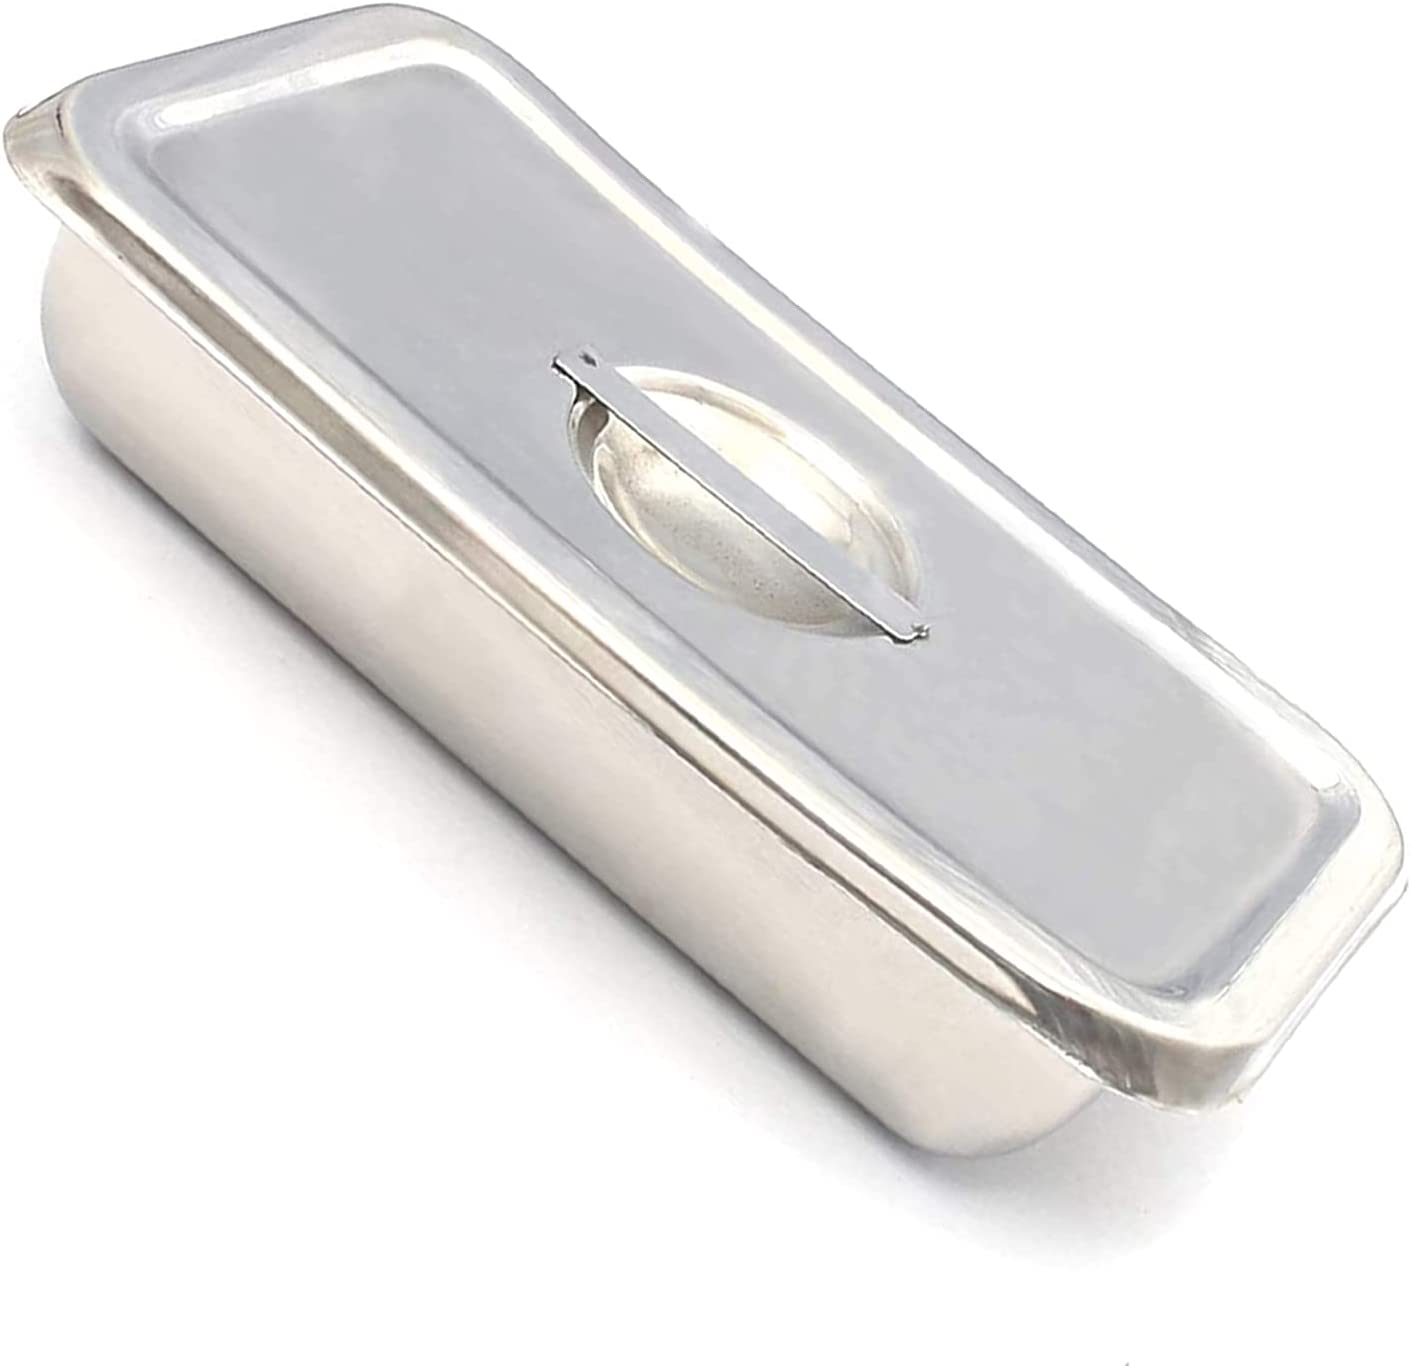 LAJA Year-end annual account Imports Stainless Steel Instrument Tray Organiz Nippon regular agency 8''X6''X2''